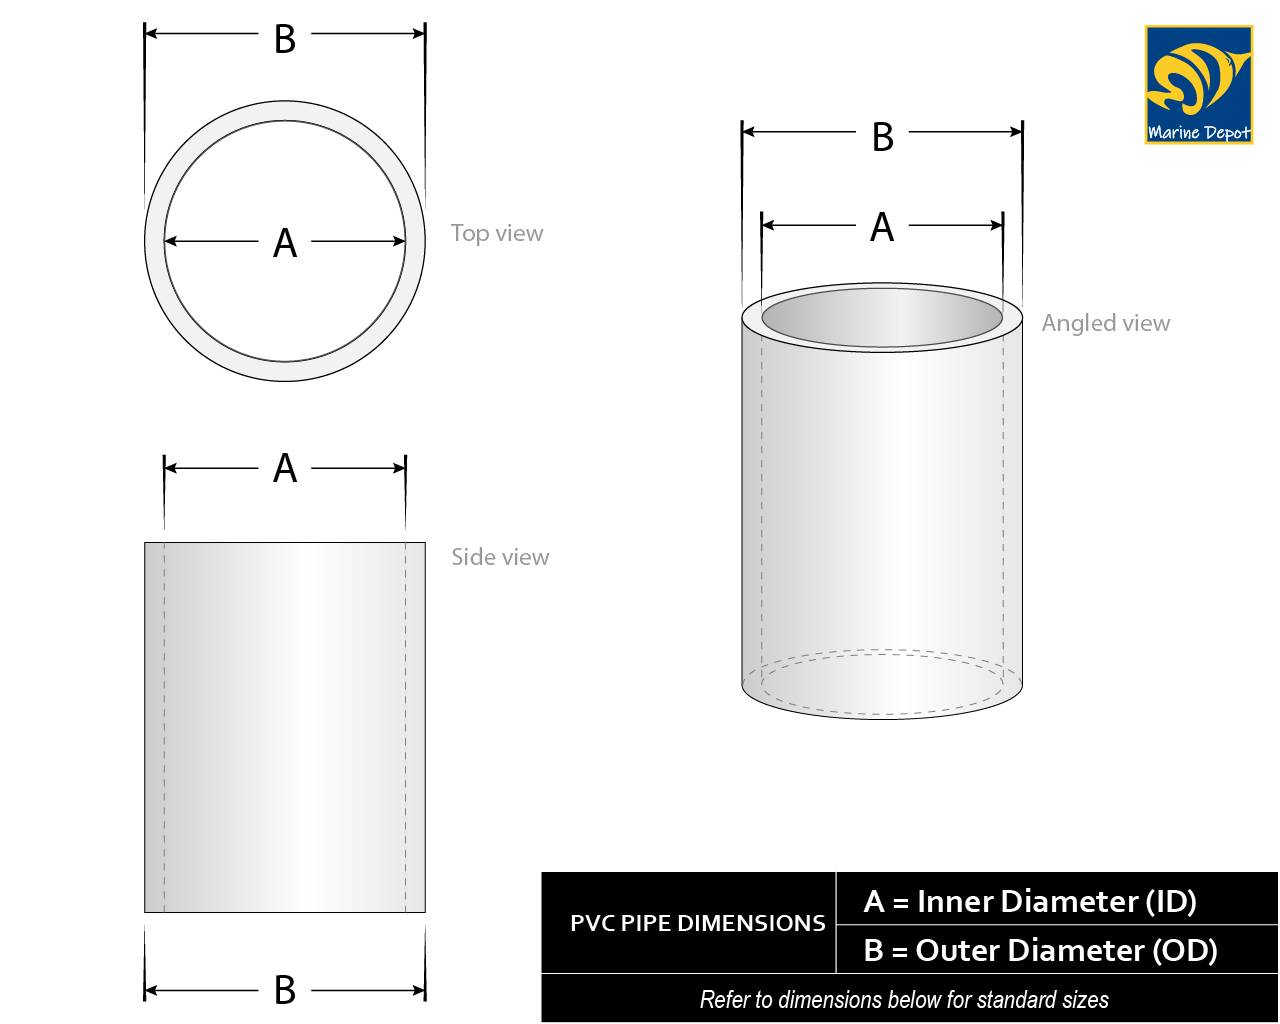 pvc pipe dimensions referring to the Inner Diameter (ID) vs the Outer Diameter (OD) for plumbing